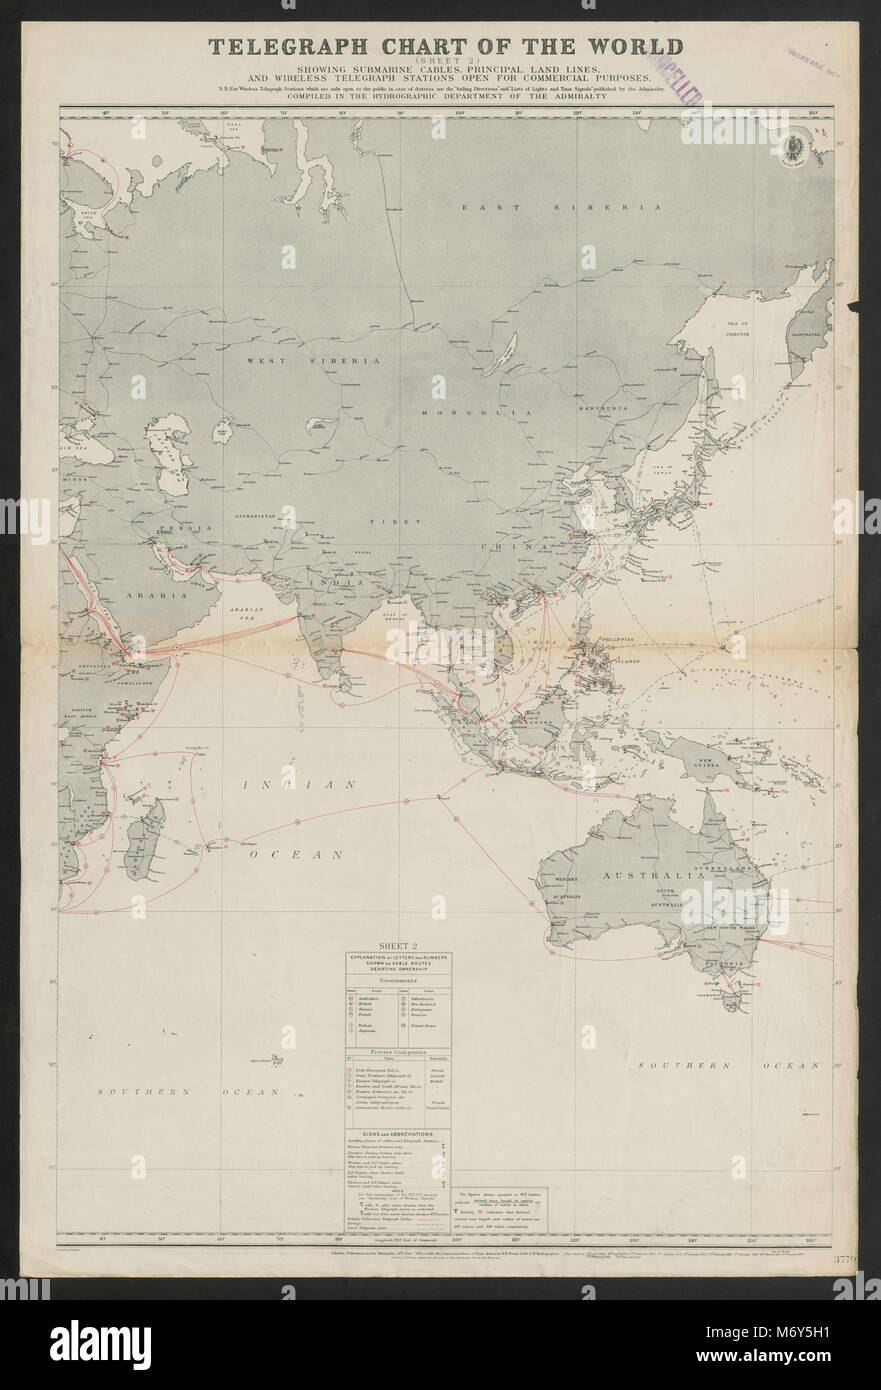 Submarine telegraph cables stock photos submarine telegraph cables asia telegraph cable routes undersea overland admiralty sea chart 1922 map stock image publicscrutiny Images